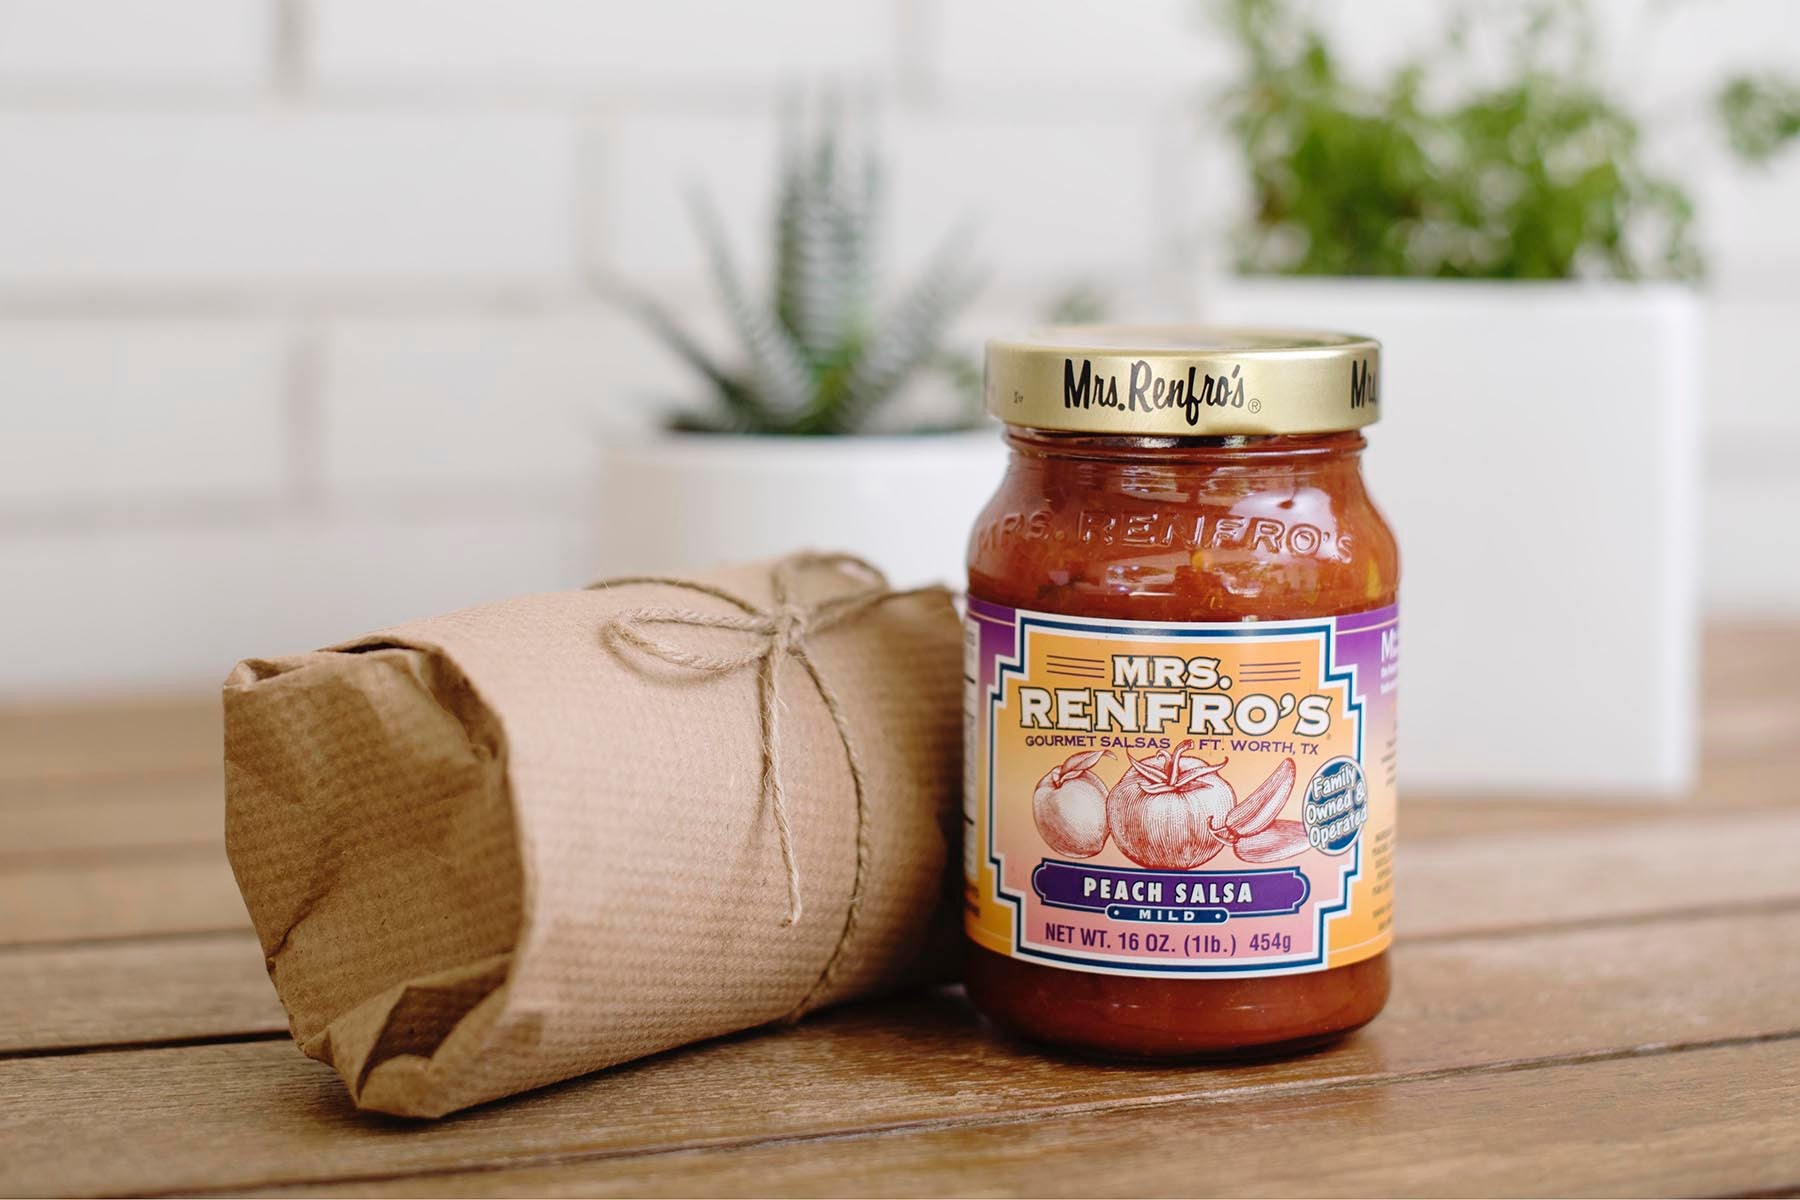 <a href='http://www.renfrofoods.com/' target='_blank'><b>Mrs. Renfro's Peach Salsa</b></a><br>Third Generation family business founded 76 years ago in Fort Worth, TX. Refreshingly smooth, their peach salsa is a real palate pleaser!